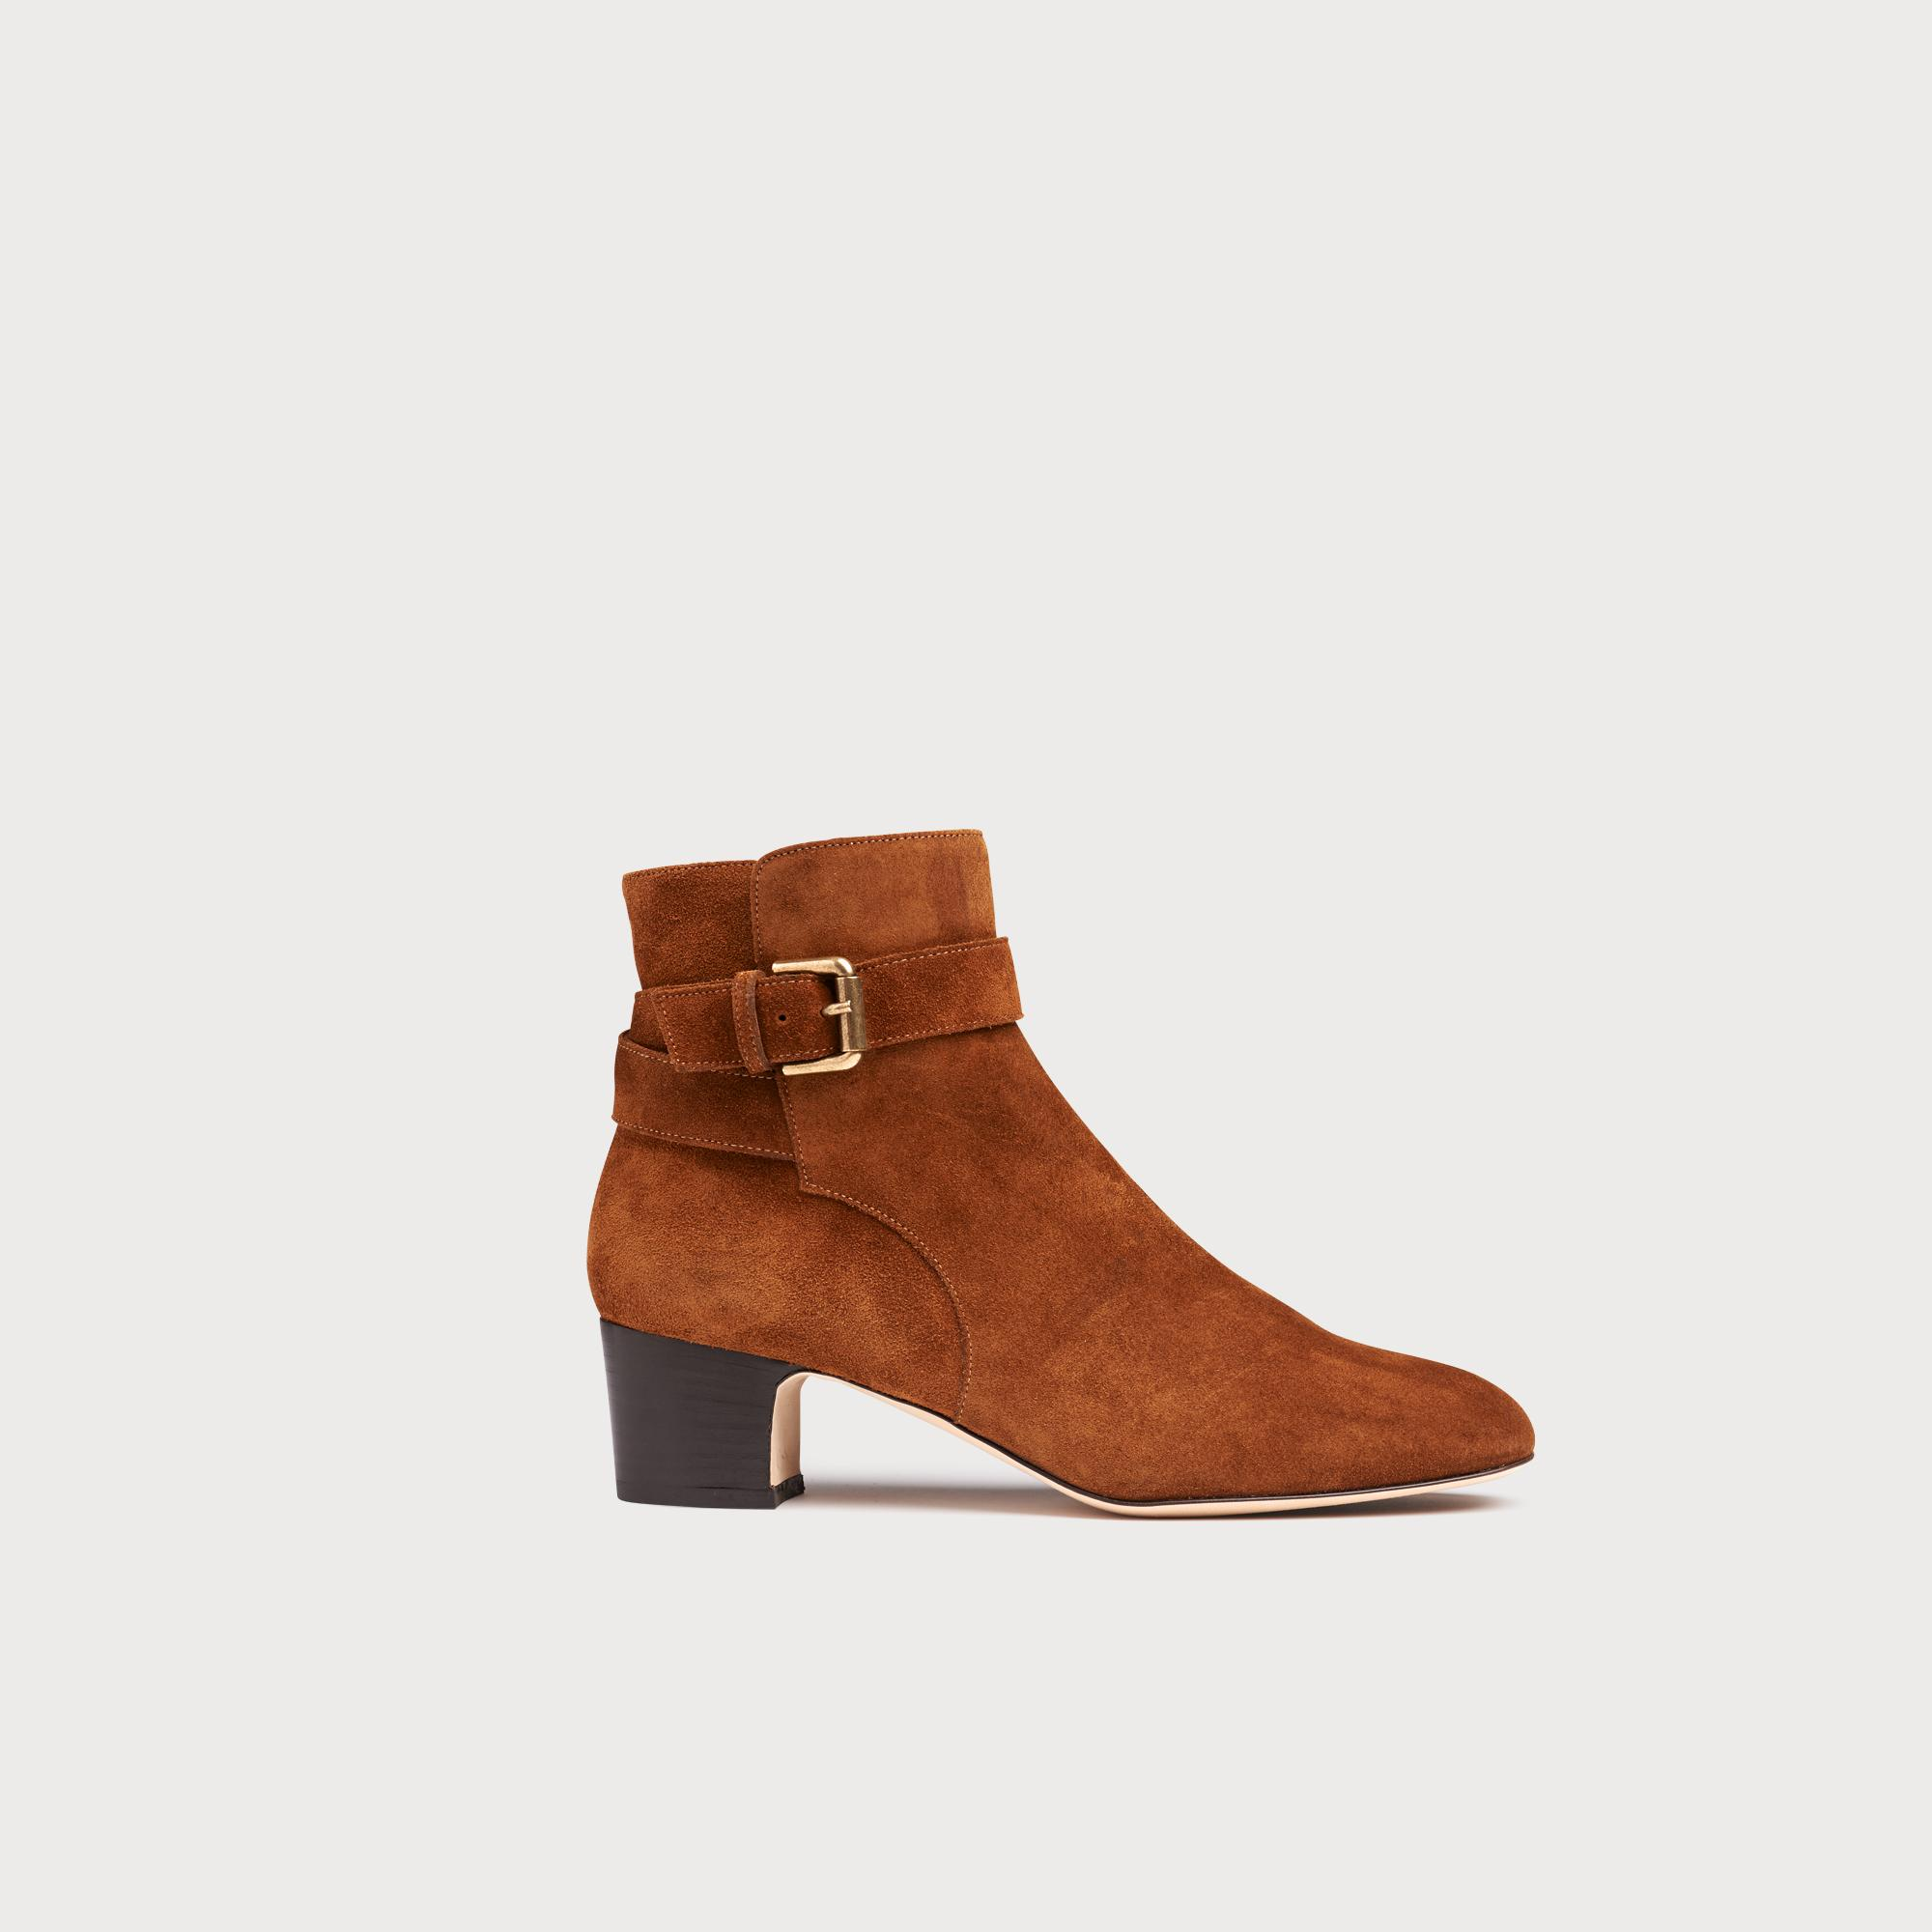 6ec536c757f63 Jerrie Caramel Suede Ankle Boots